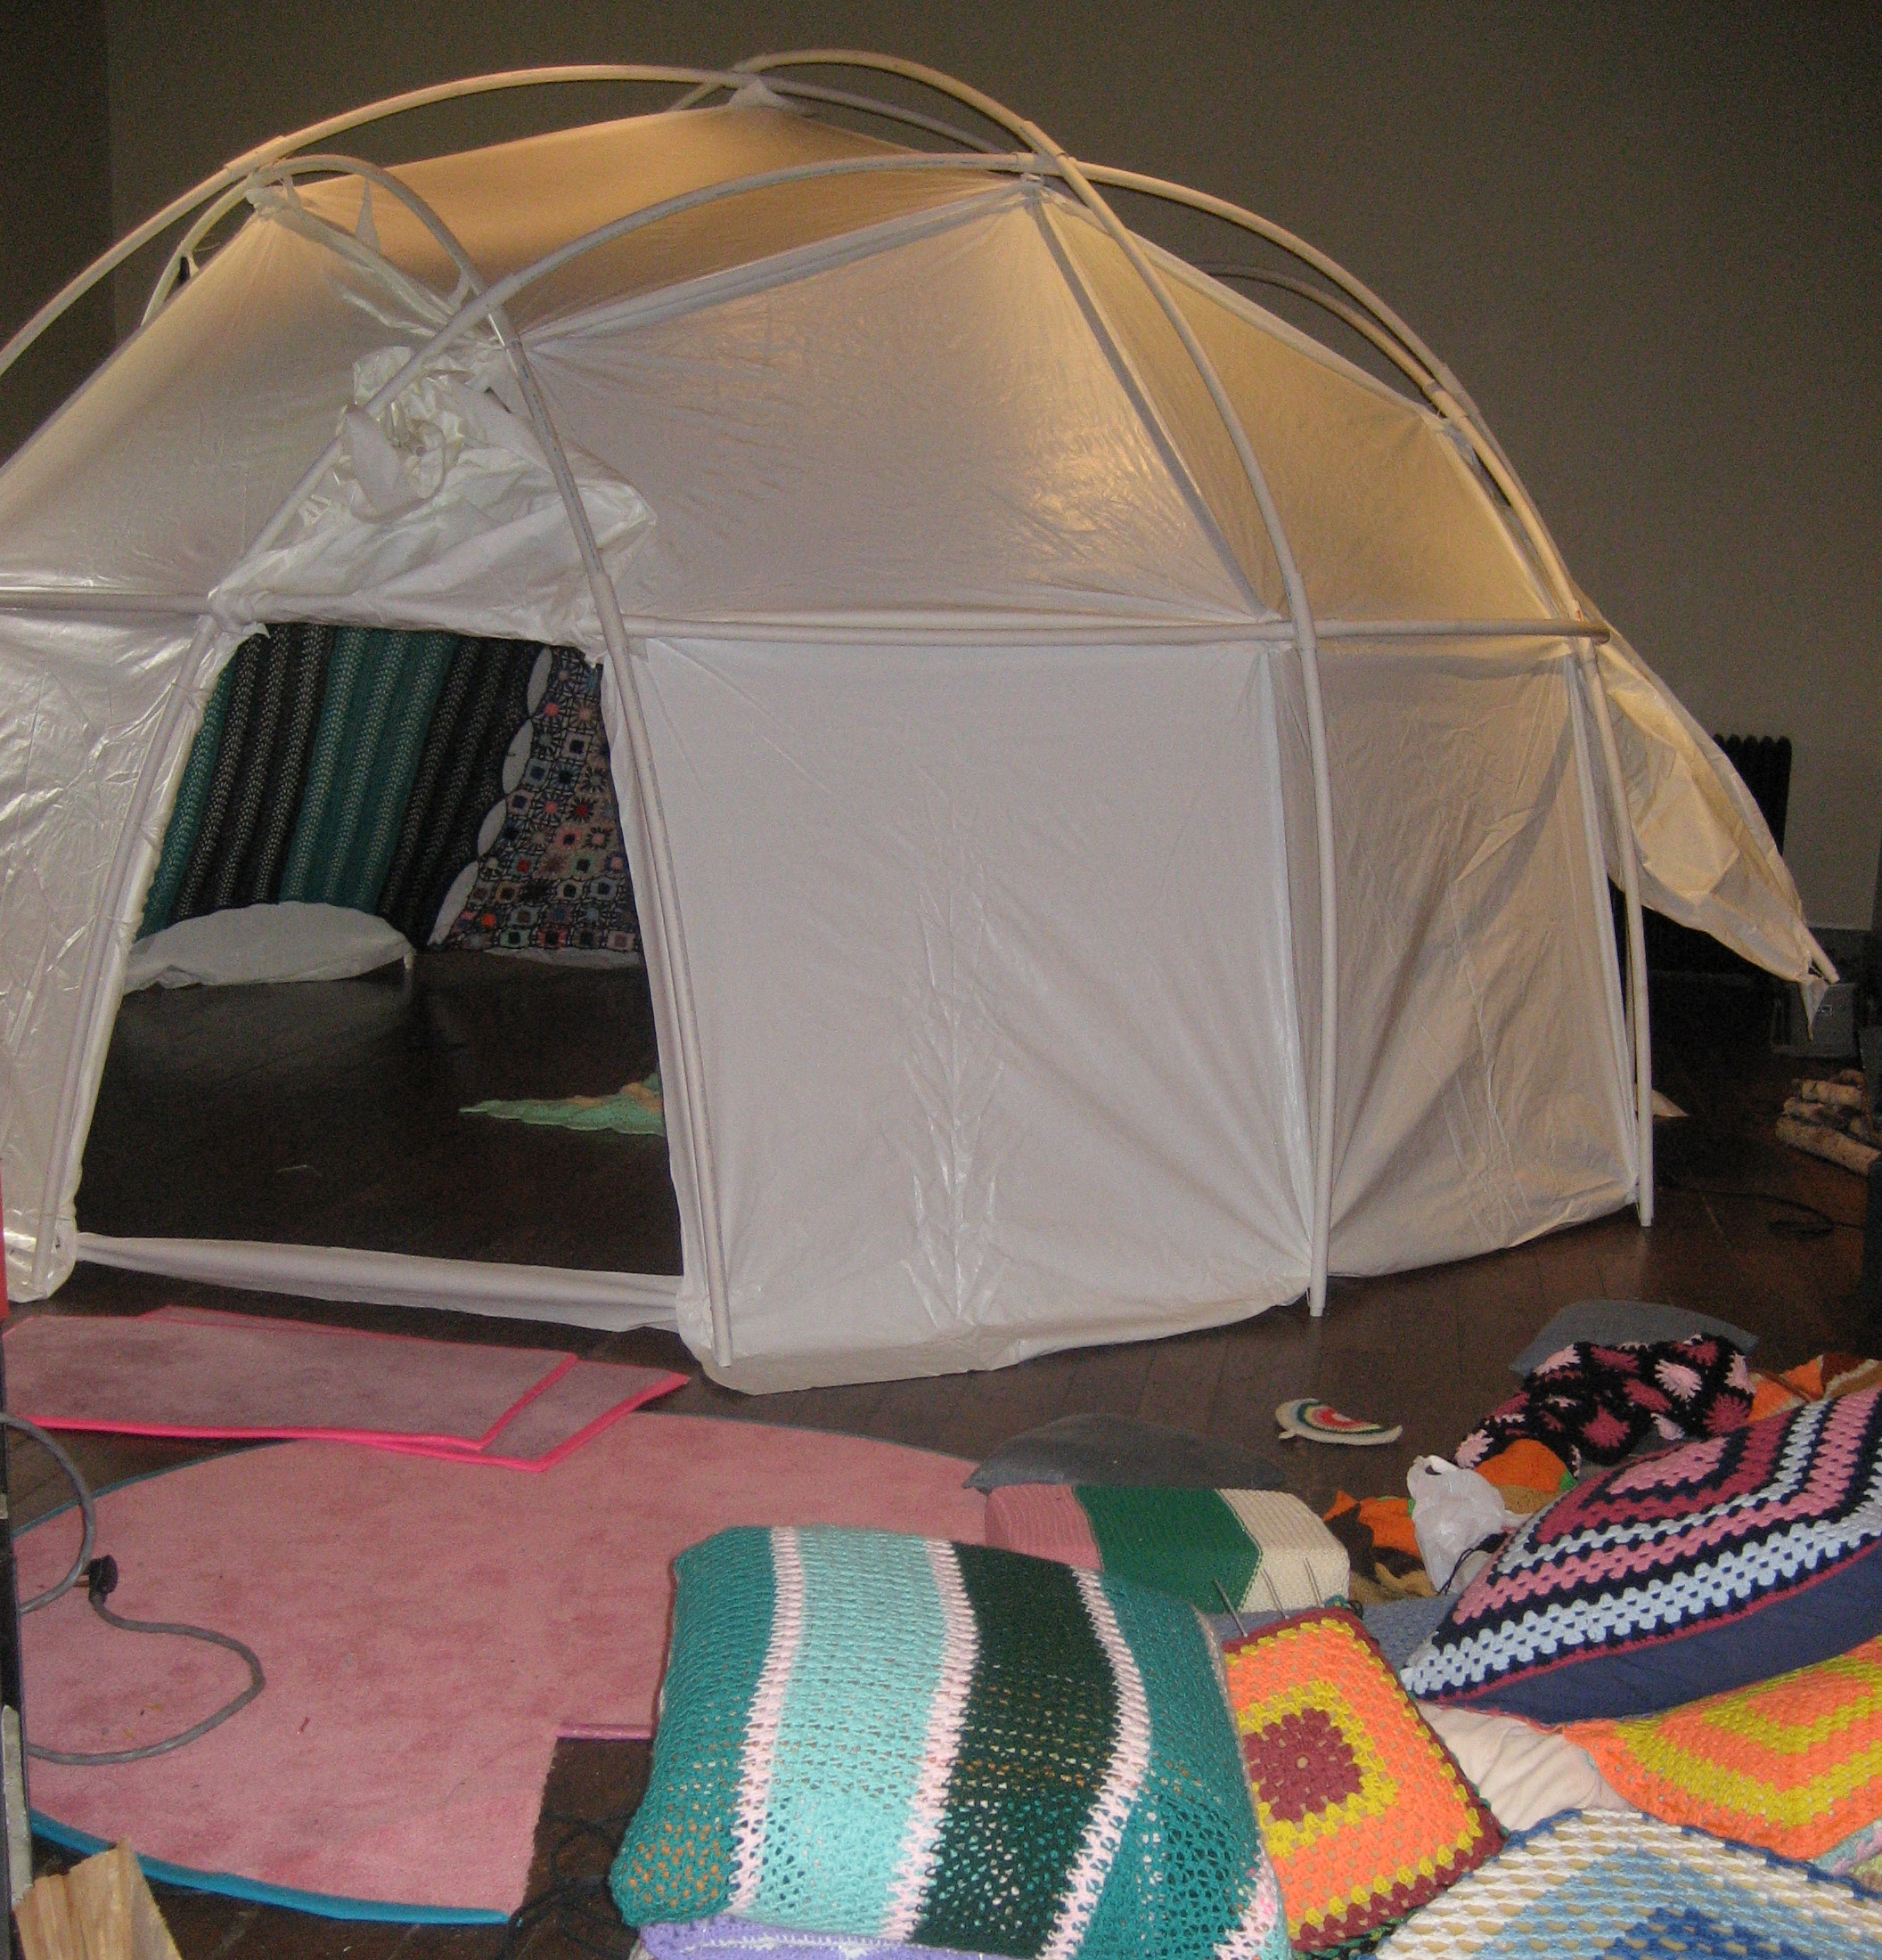 A yurt installed in the gallery with crochet pillows surrounding it